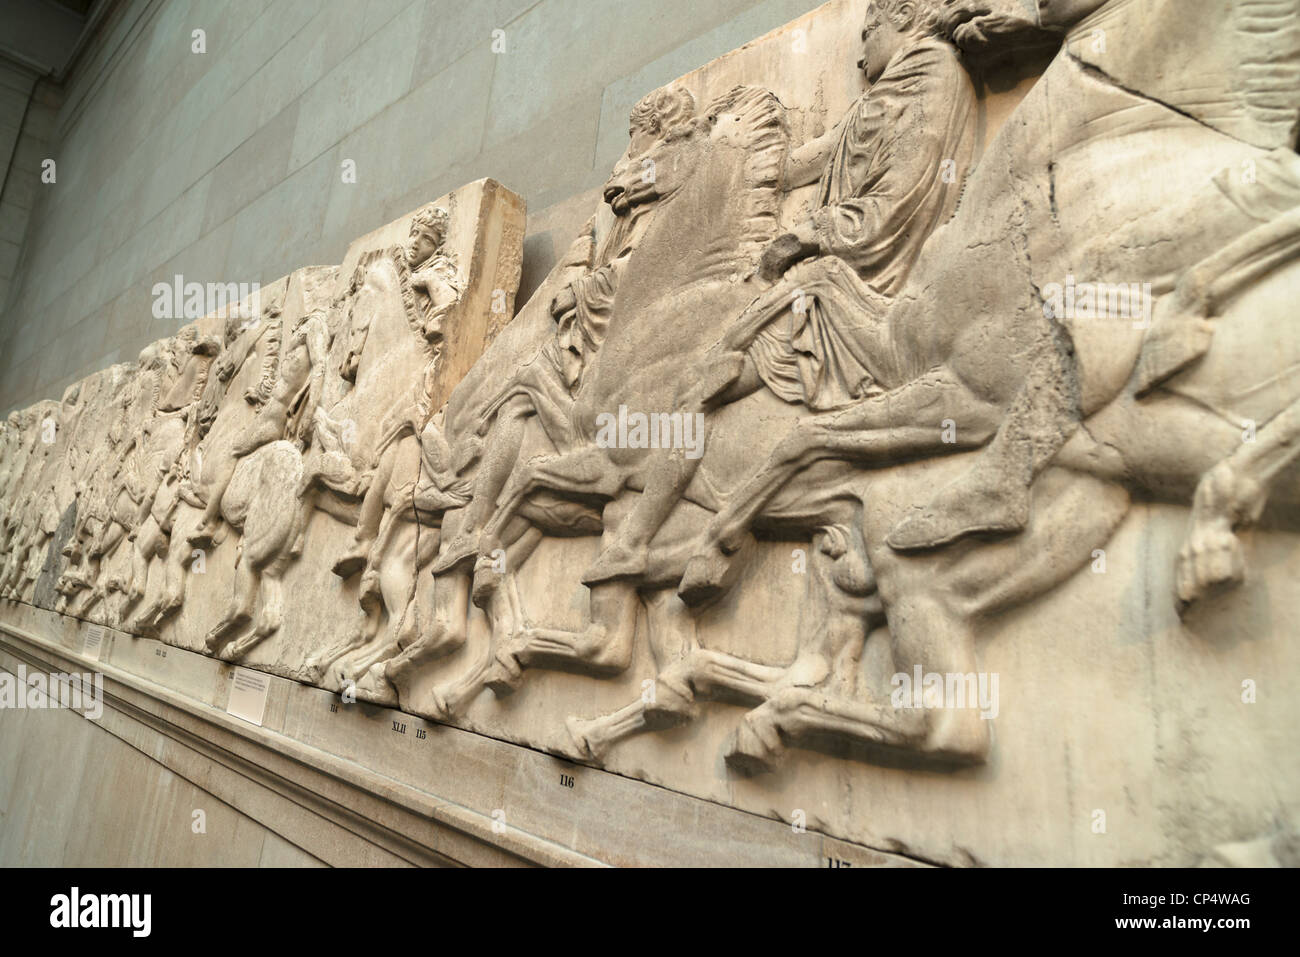 The Elgin Marbles From The Parthenon In Athens At The